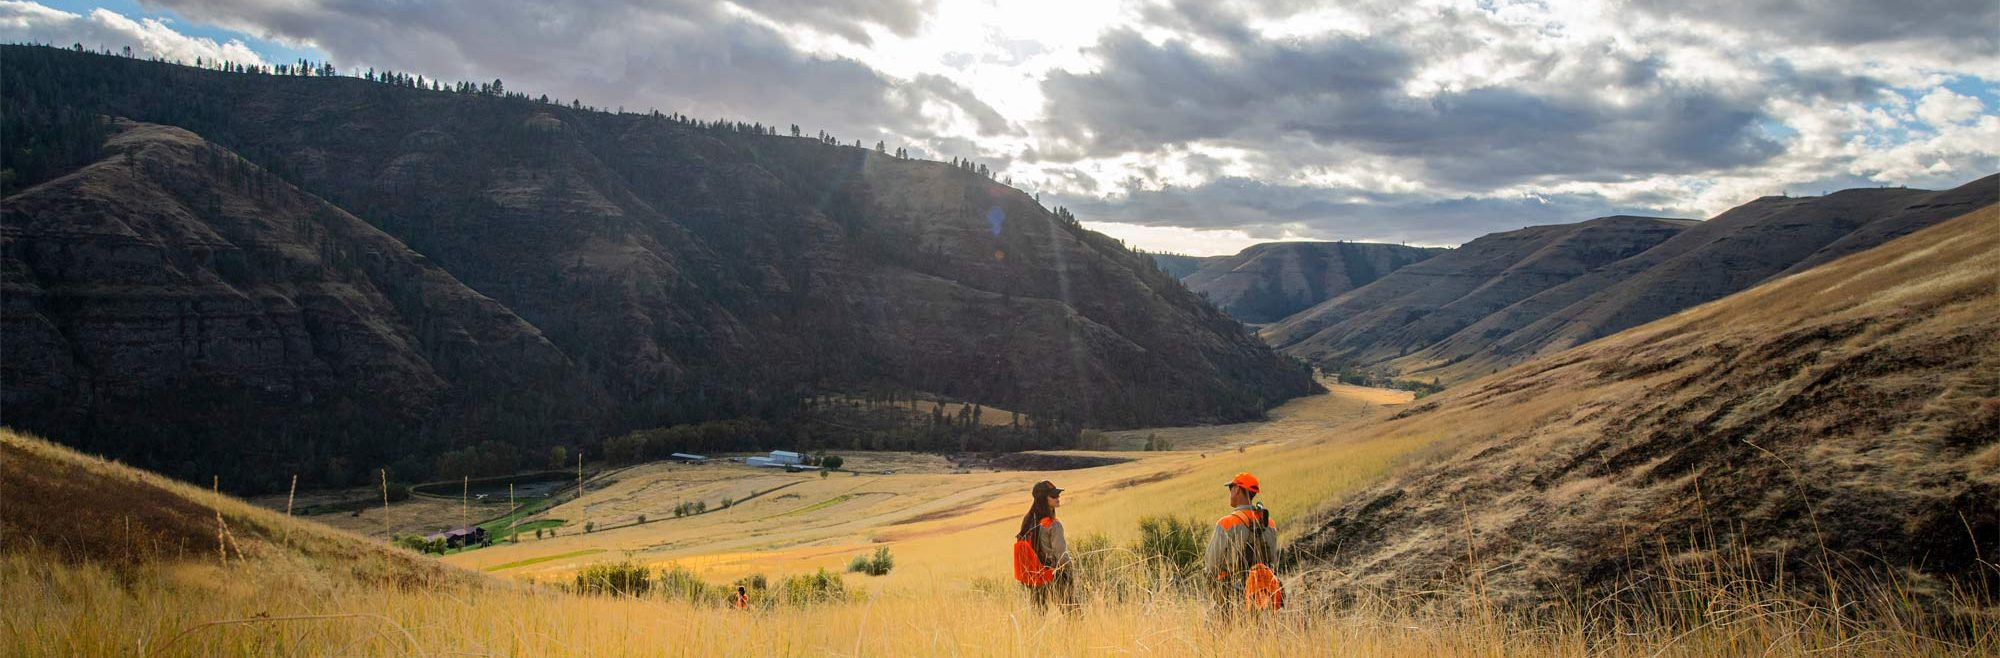 Flying B Ranch   Hunting Trips and Lodges   Shooting Sportsman Magazine